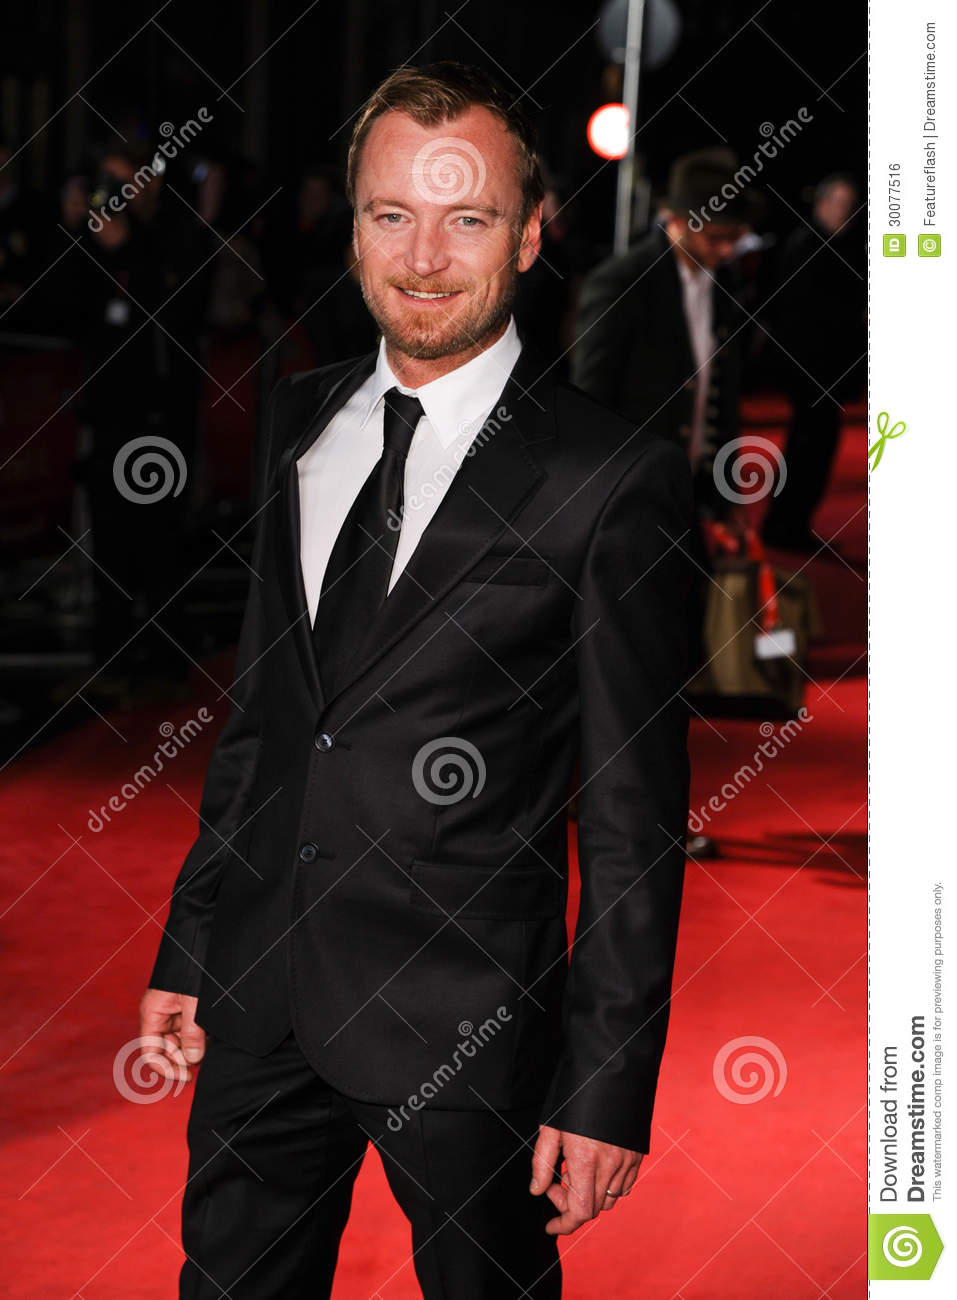 richard dormer movies and tv shows